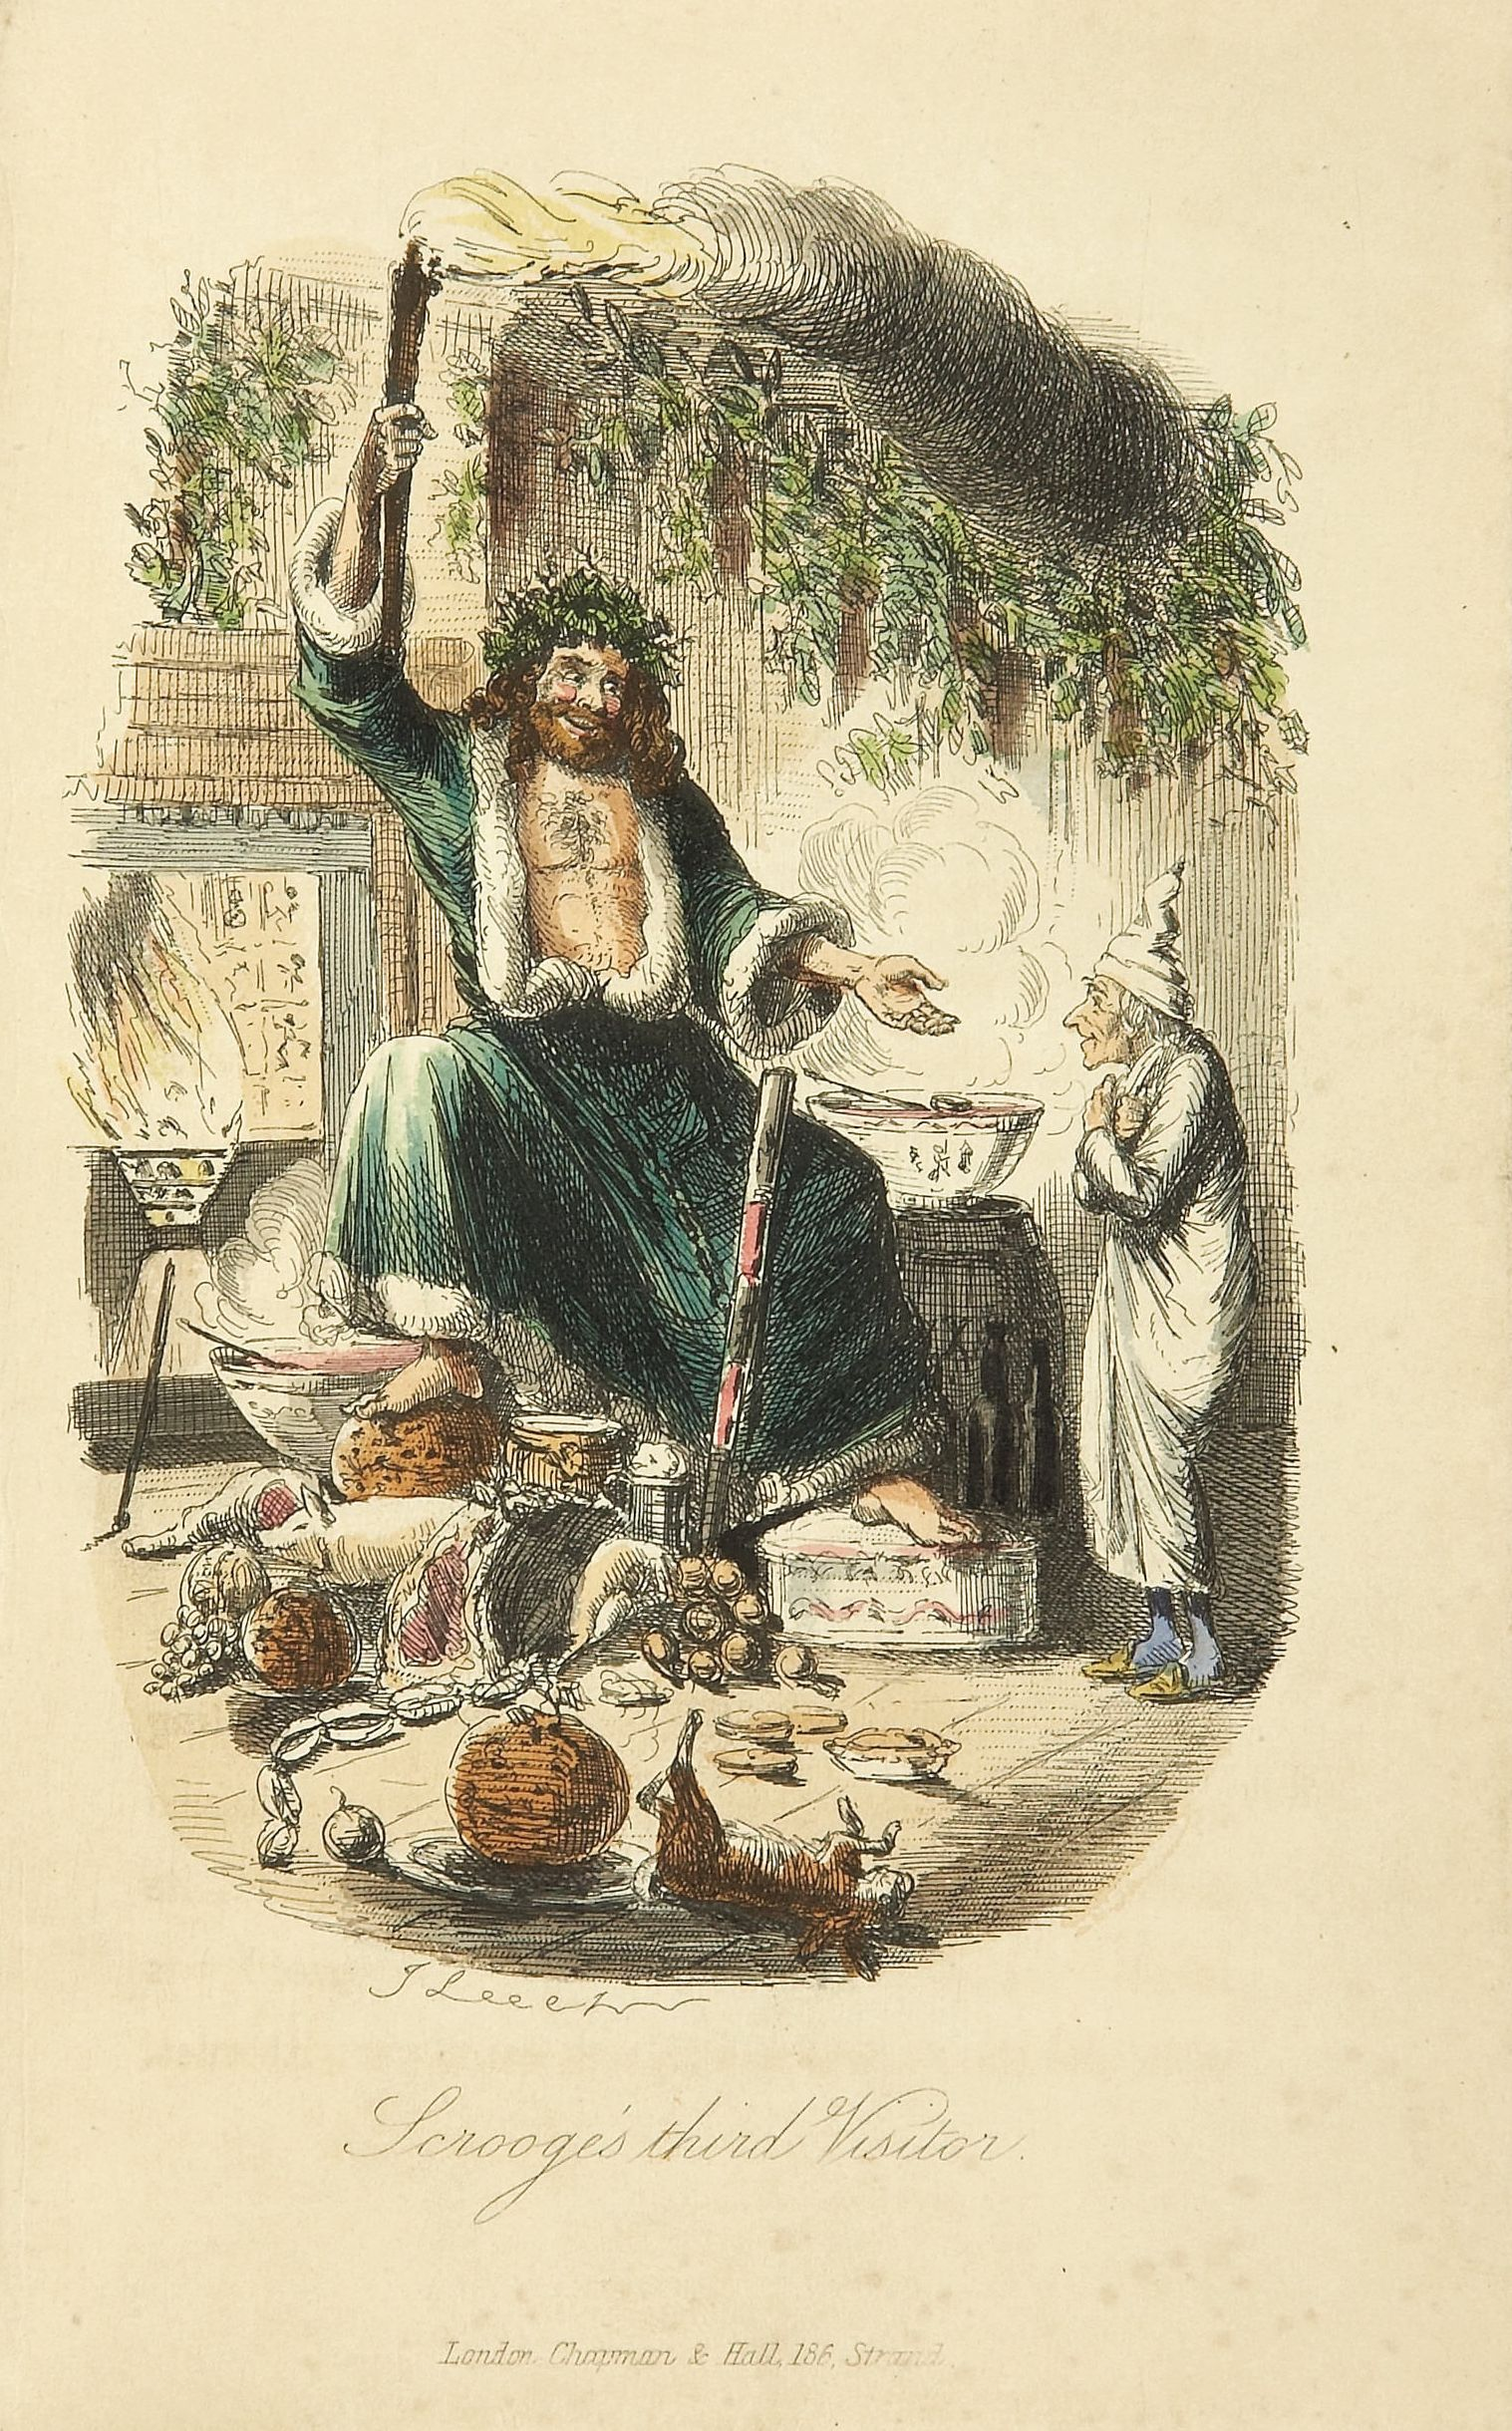 How does Dickens present Scrooge's character in stave one of A Christmas Carol?